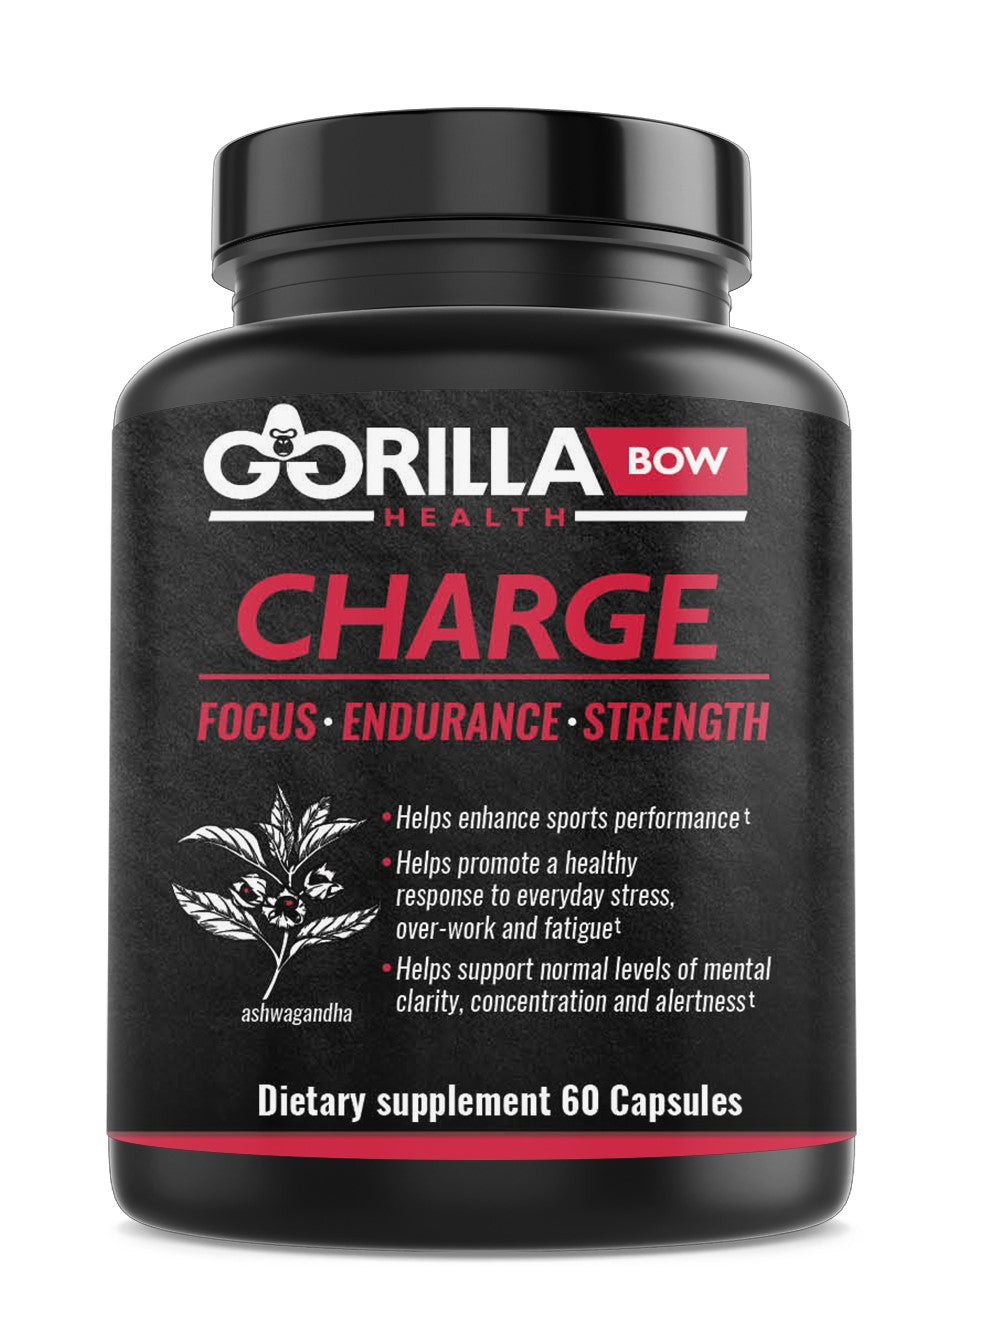 Gorilla Bow Charge Pre-Workout Supplement with ashwagandha